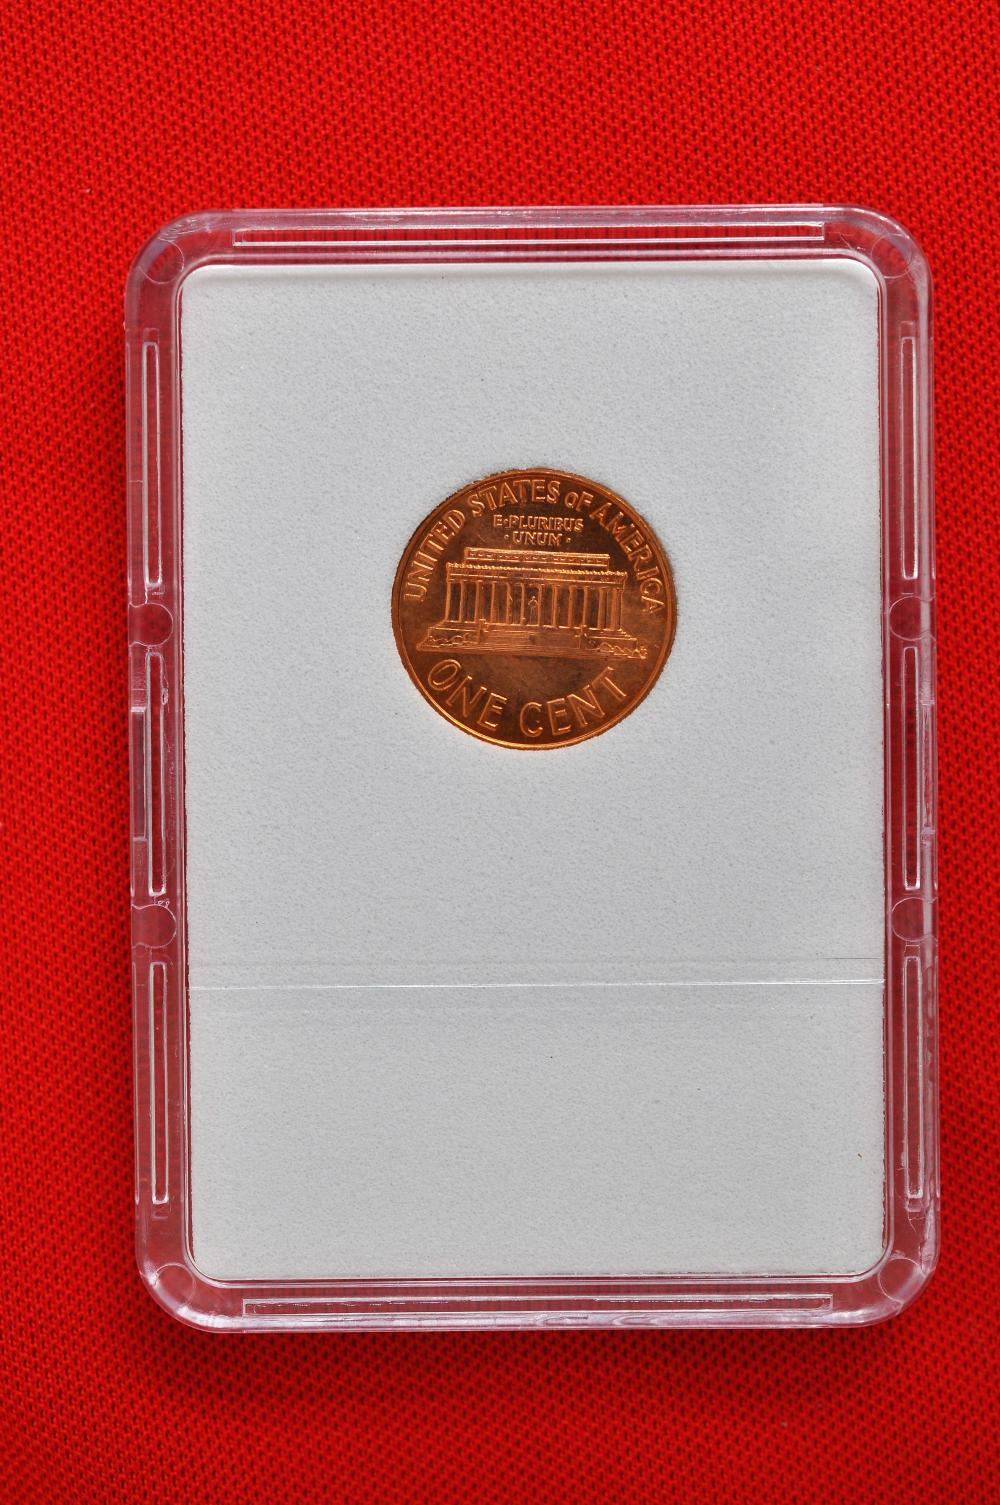 ENGS 2000-D MS-70 Lincoln Memorial Penny/Cent